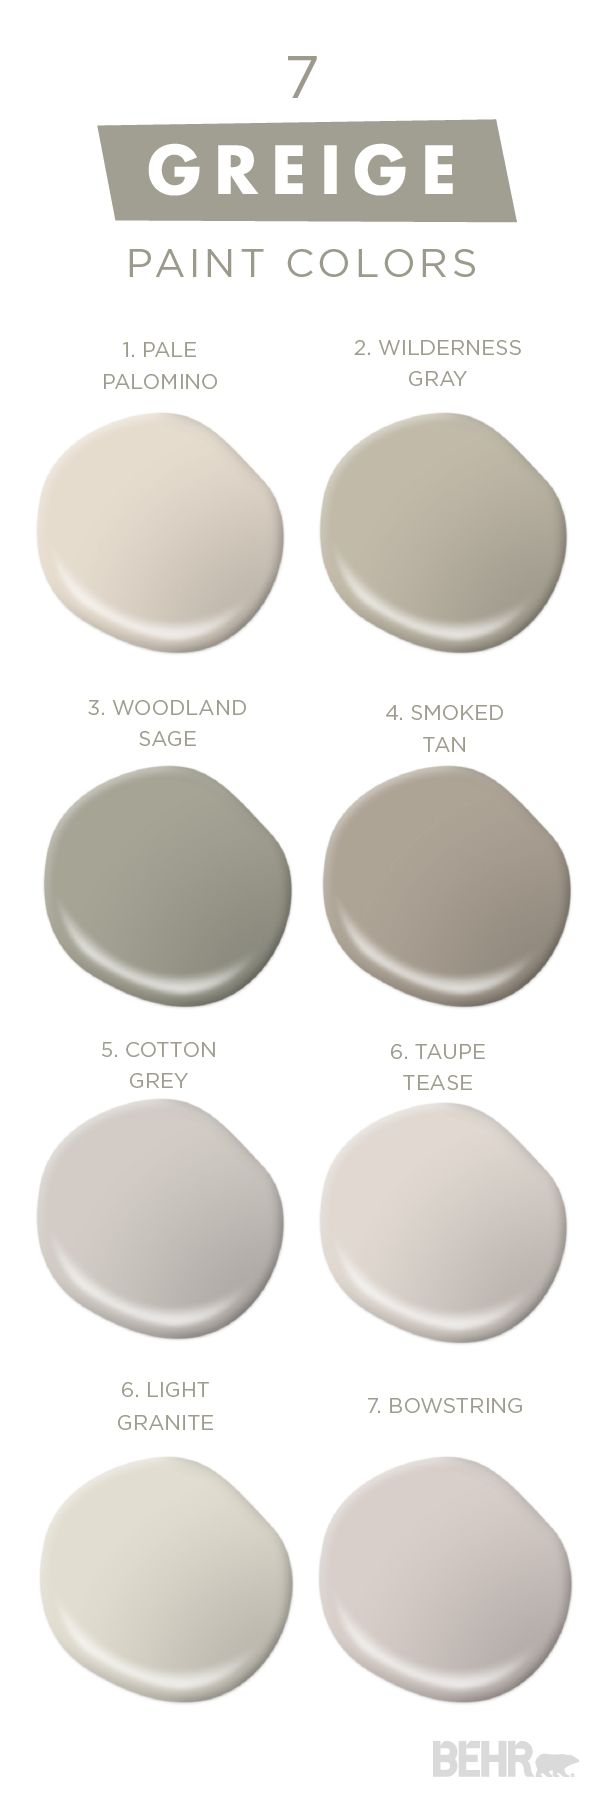 Best 20  Neutral paint colors ideas on Pinterest   Neutral paint  Neutral  wall colors and Wall coloursBest 20  Neutral paint colors ideas on Pinterest   Neutral paint  . Great Neutral Paint Colors Benjamin Moore. Home Design Ideas